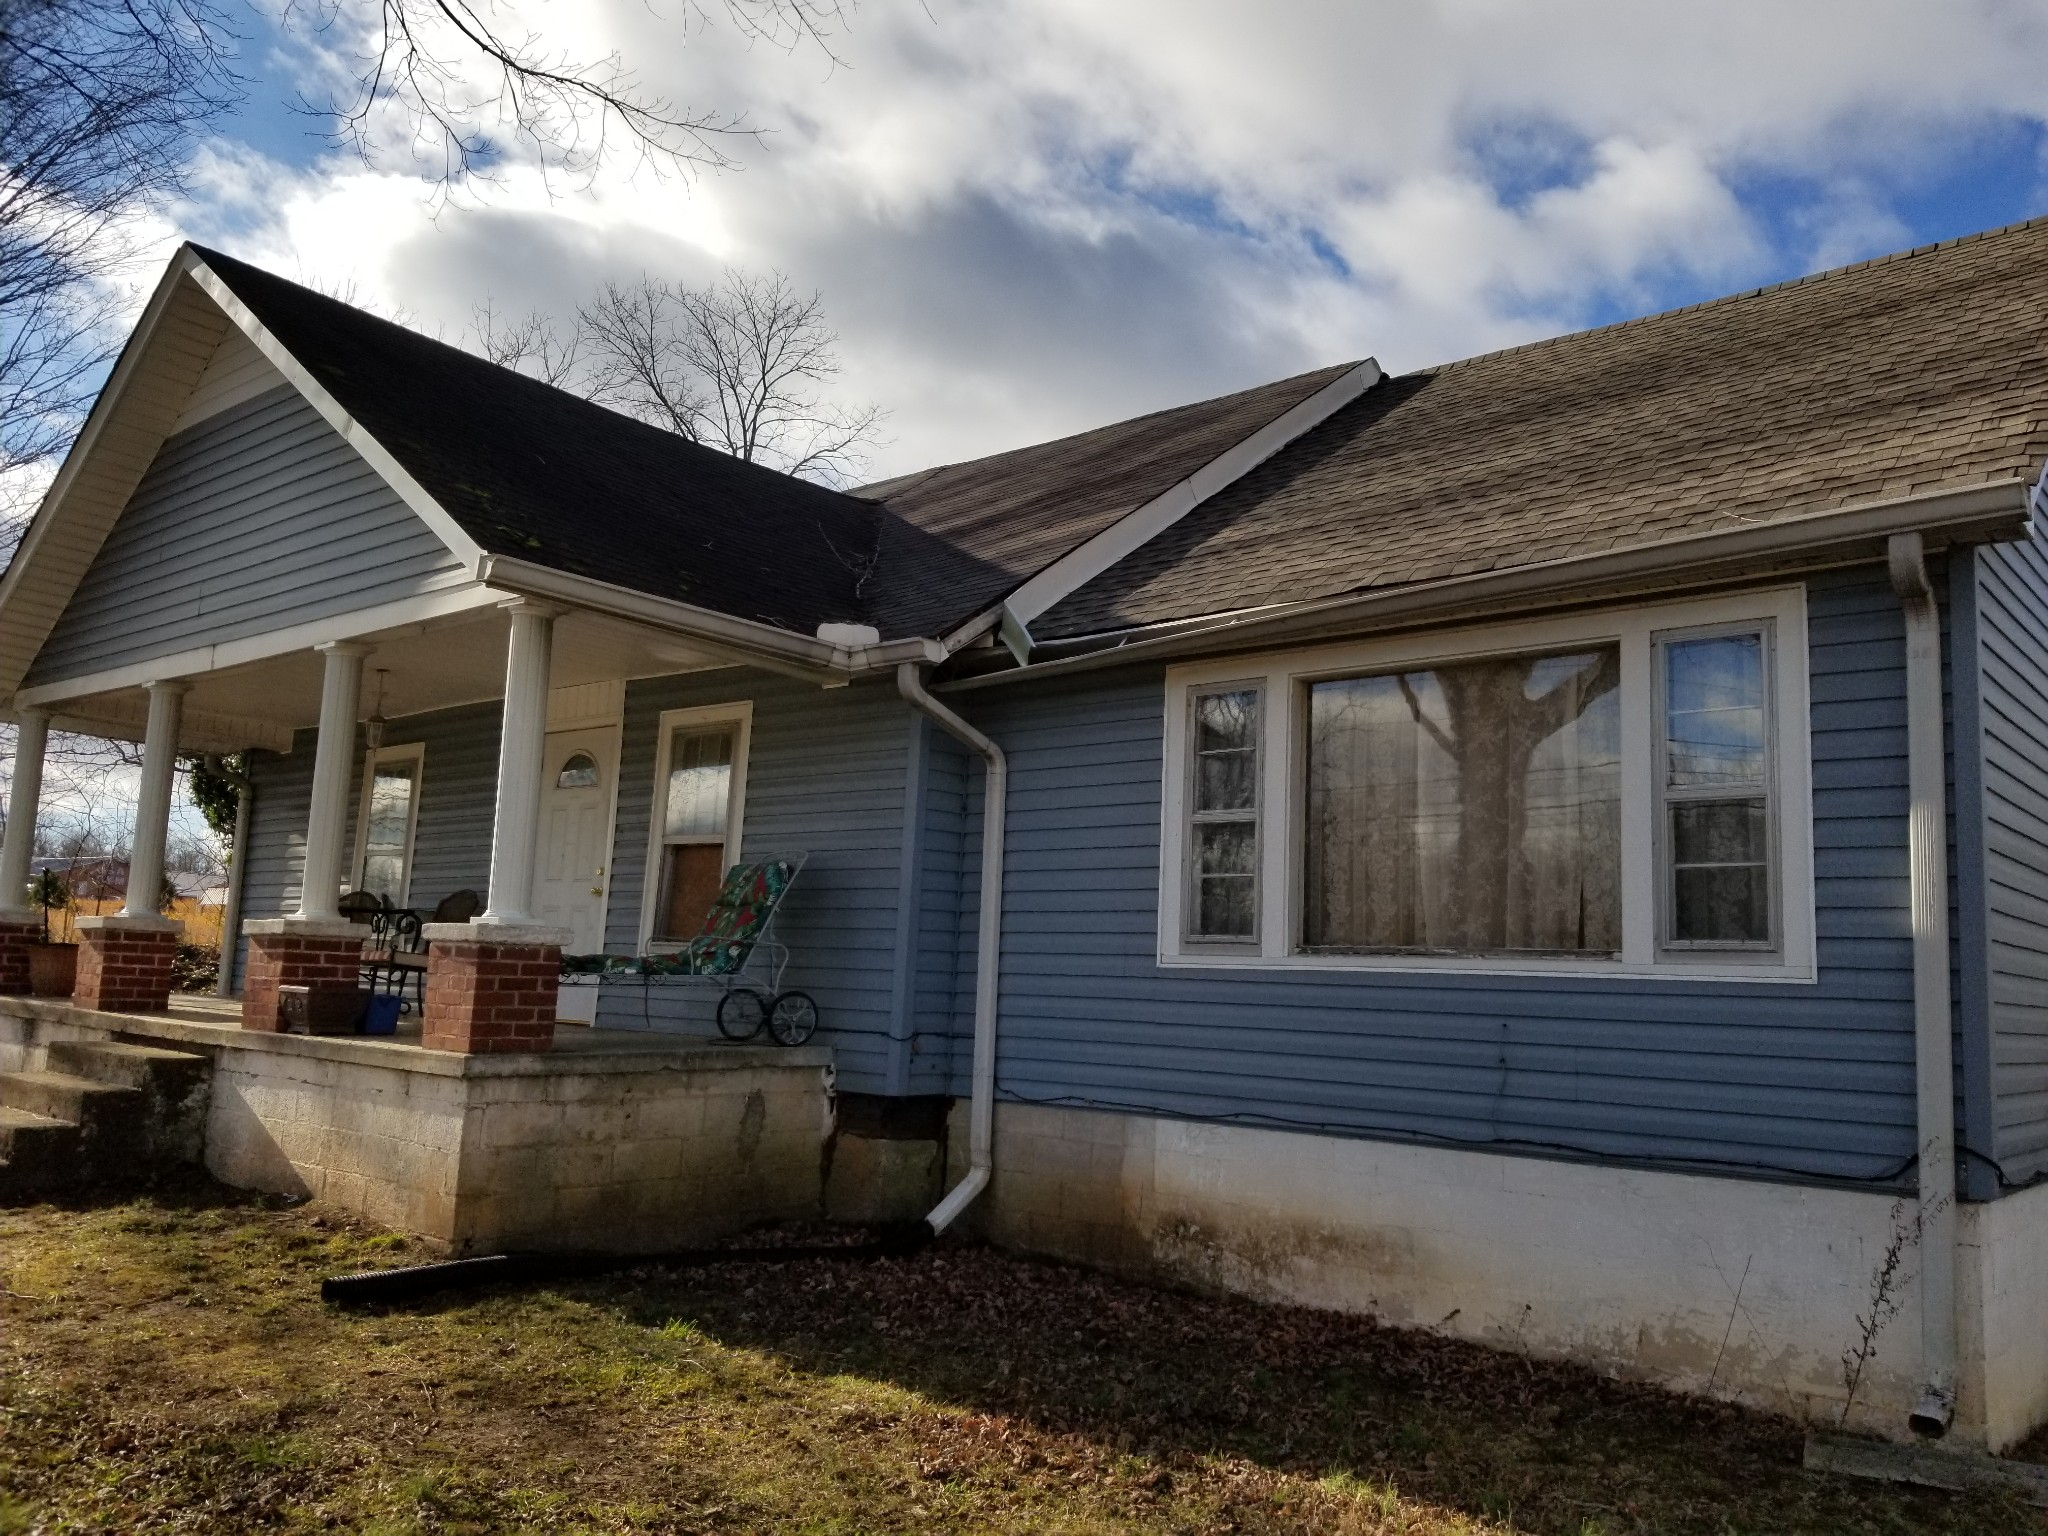 906 S Chancery St Property Photo - Mc Minnville, TN real estate listing